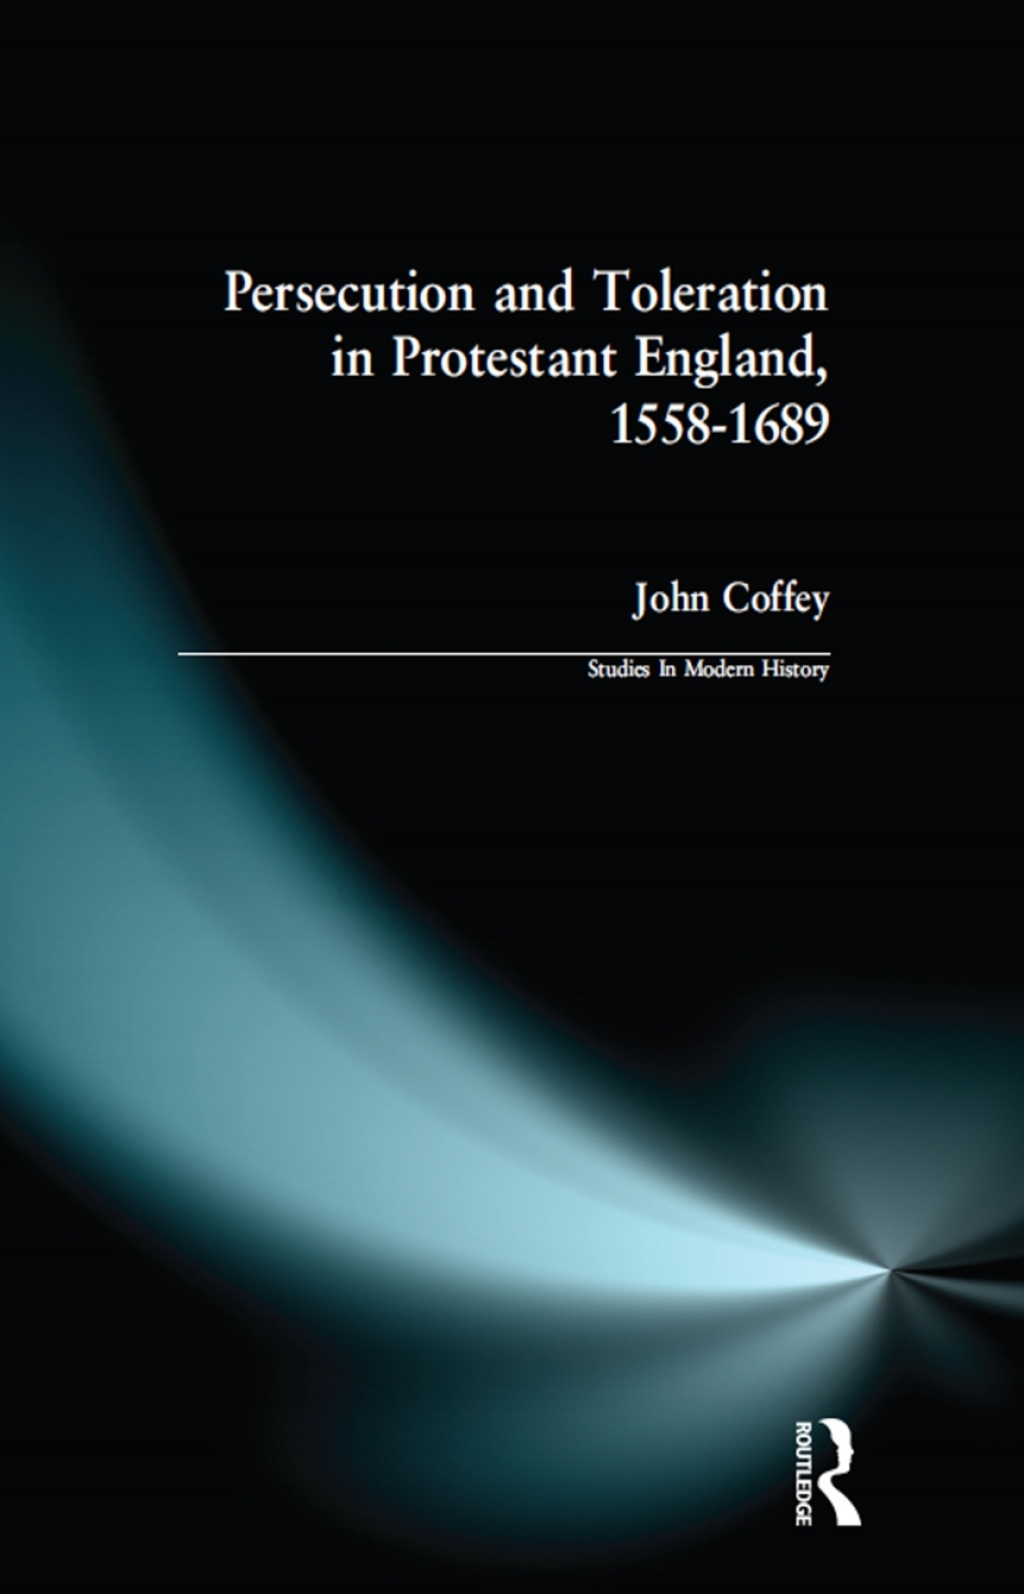 Persecution and Toleration in Protestant England 1558-1689 (eBook)